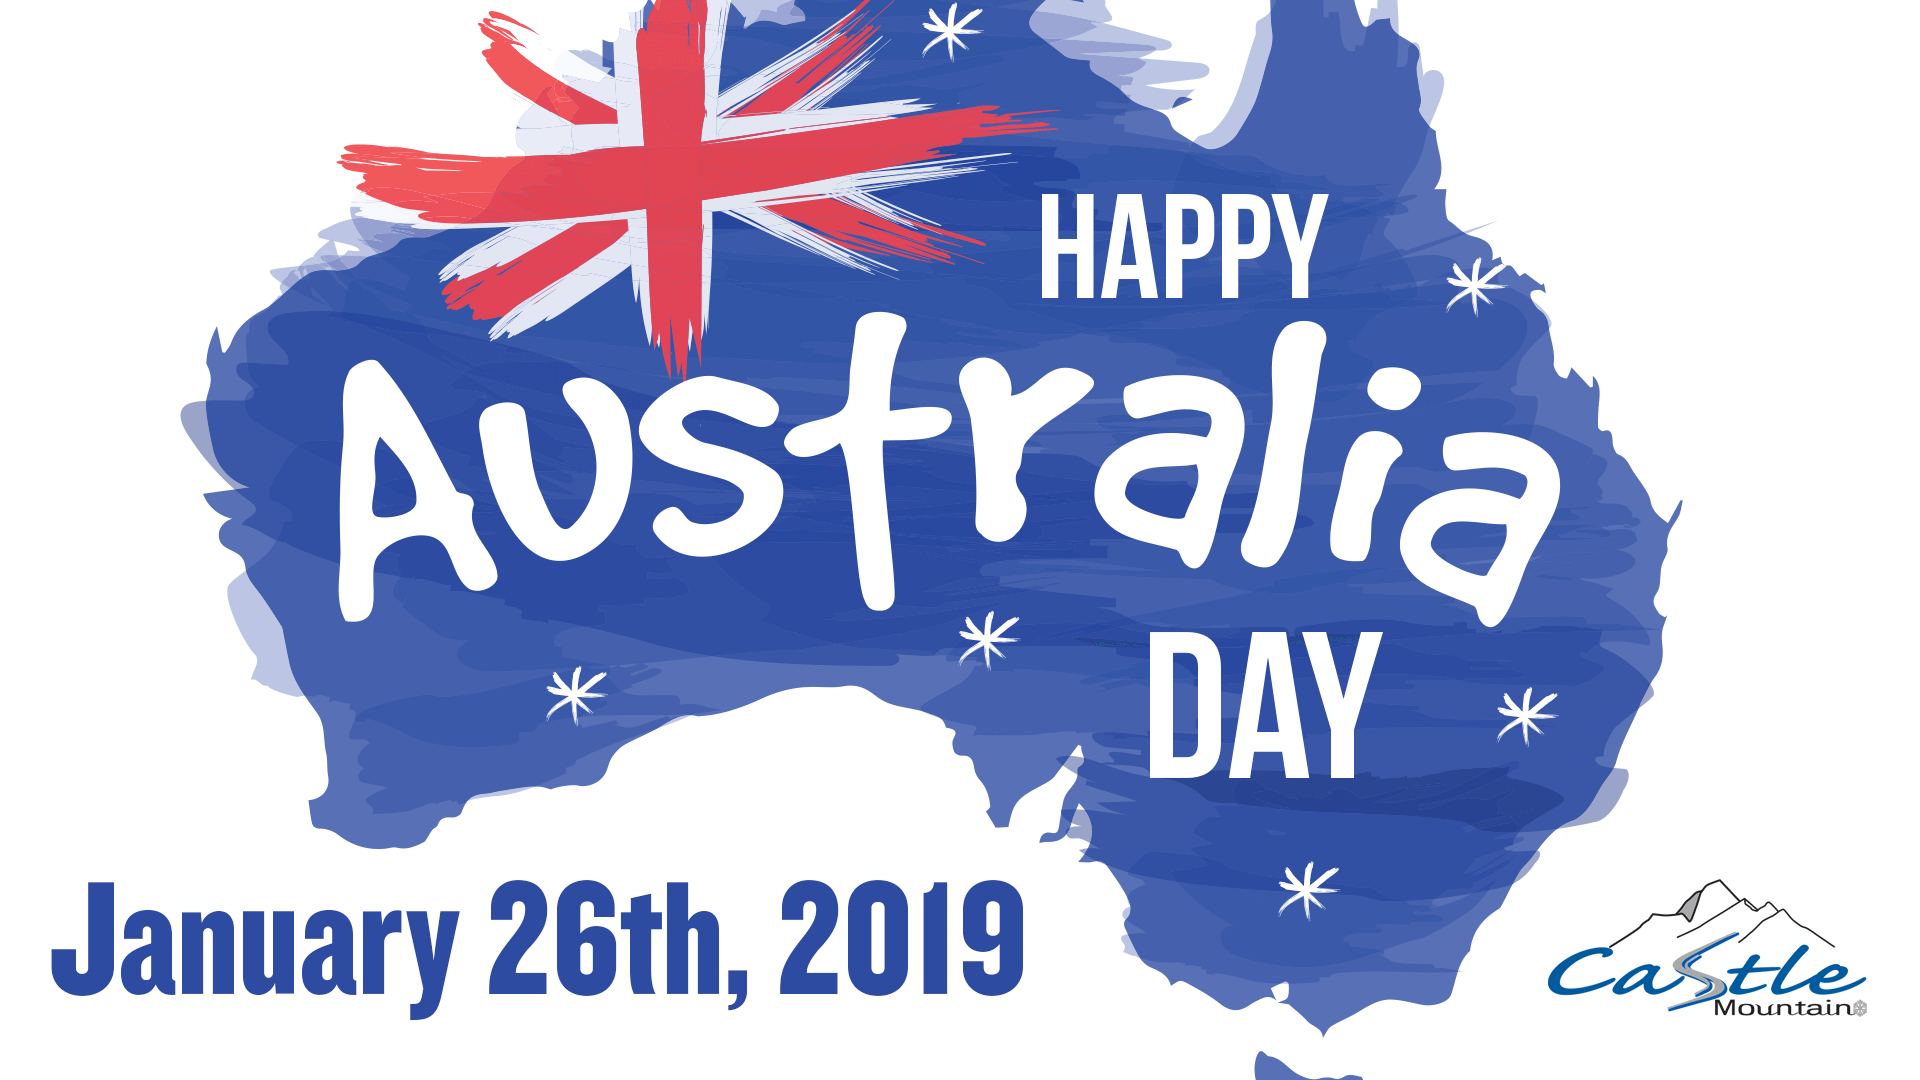 Australia day 2016 clipart banner freeuse library Australia Day | Castle Mountain Resort banner freeuse library